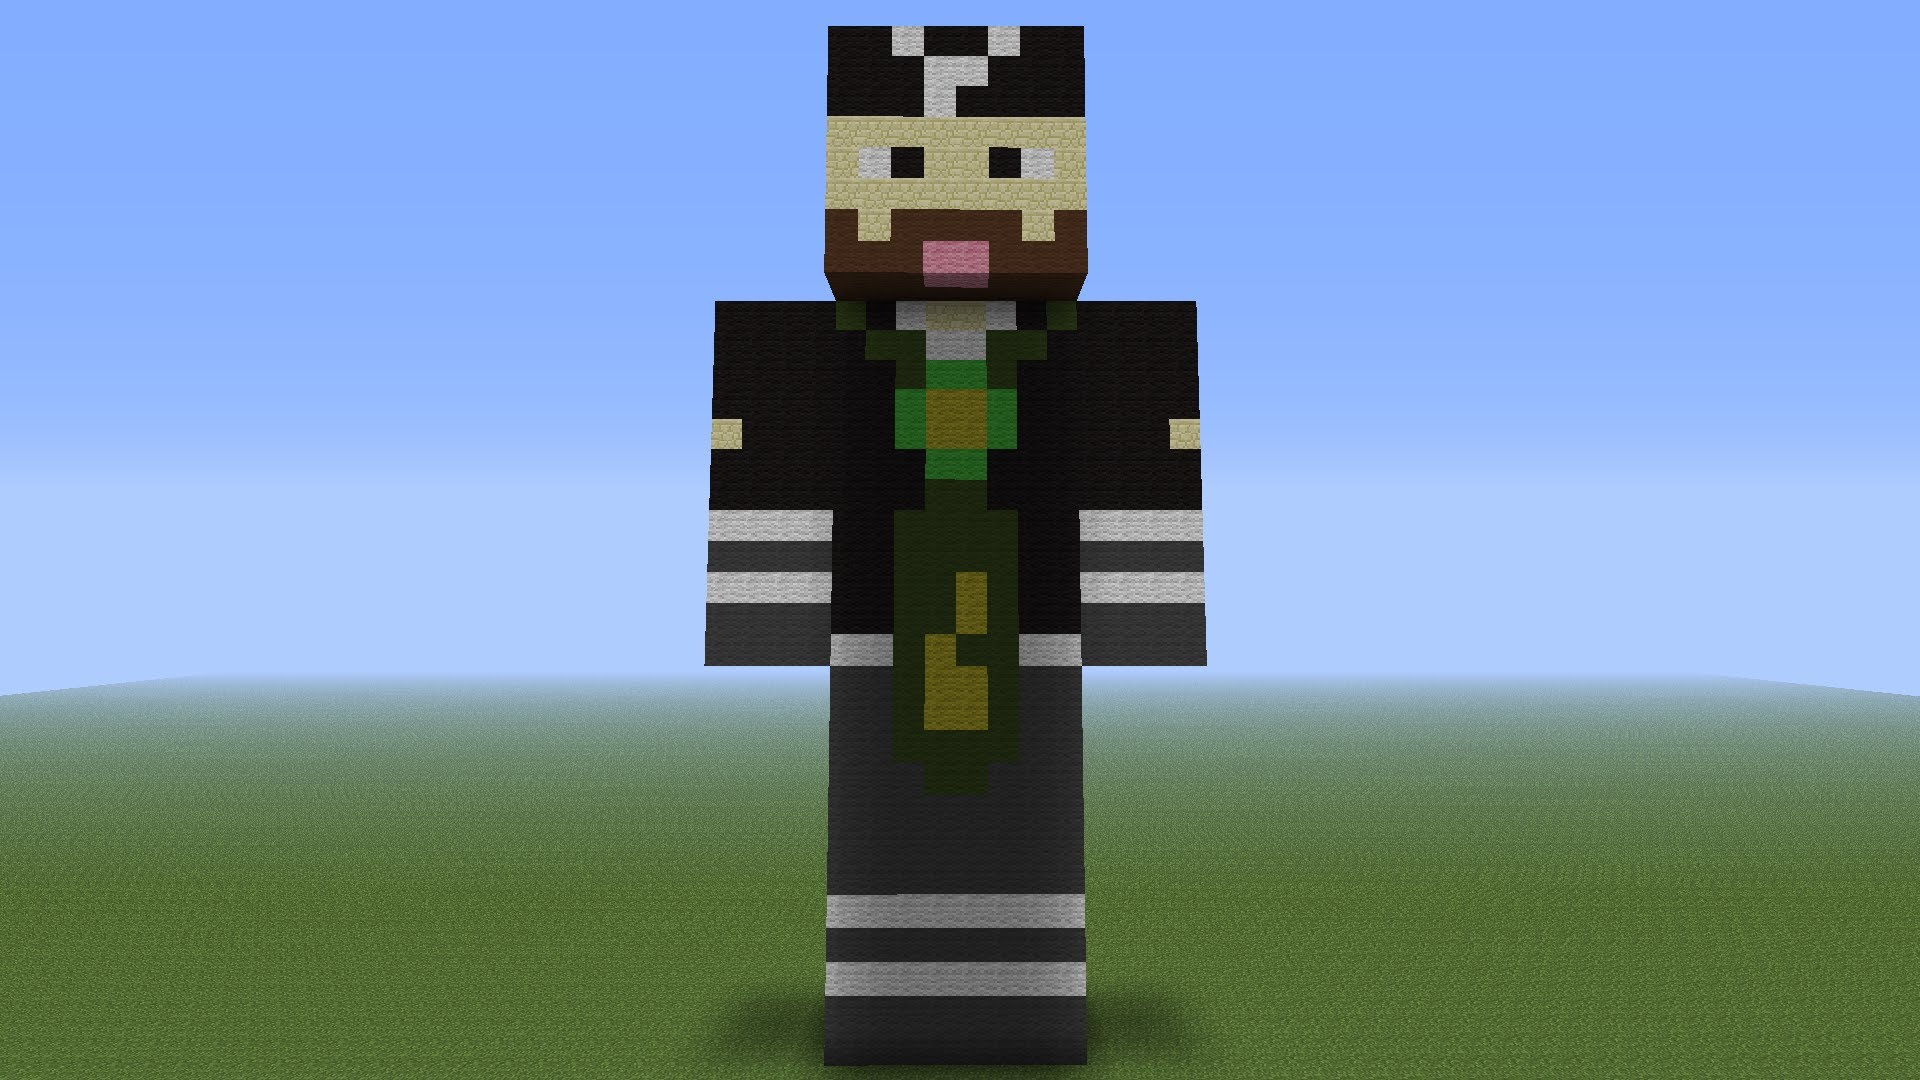 Cool Wallpaper Minecraft Android - Minecraft-Skin-Wallpaper-For-Android  Perfect Image Reference_508619.jpg